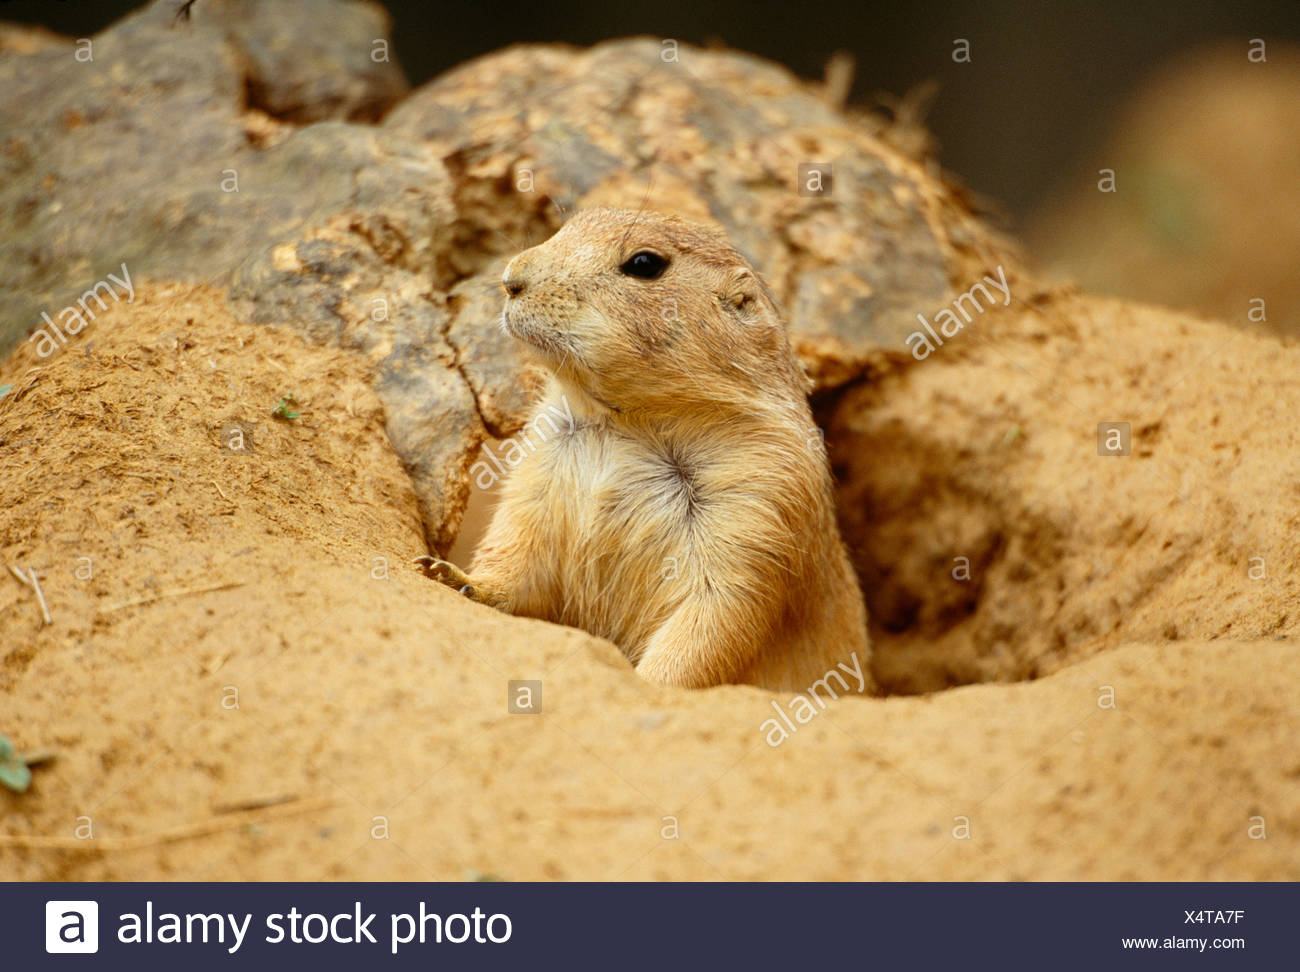 Utah Prairie Dog - Stock Image